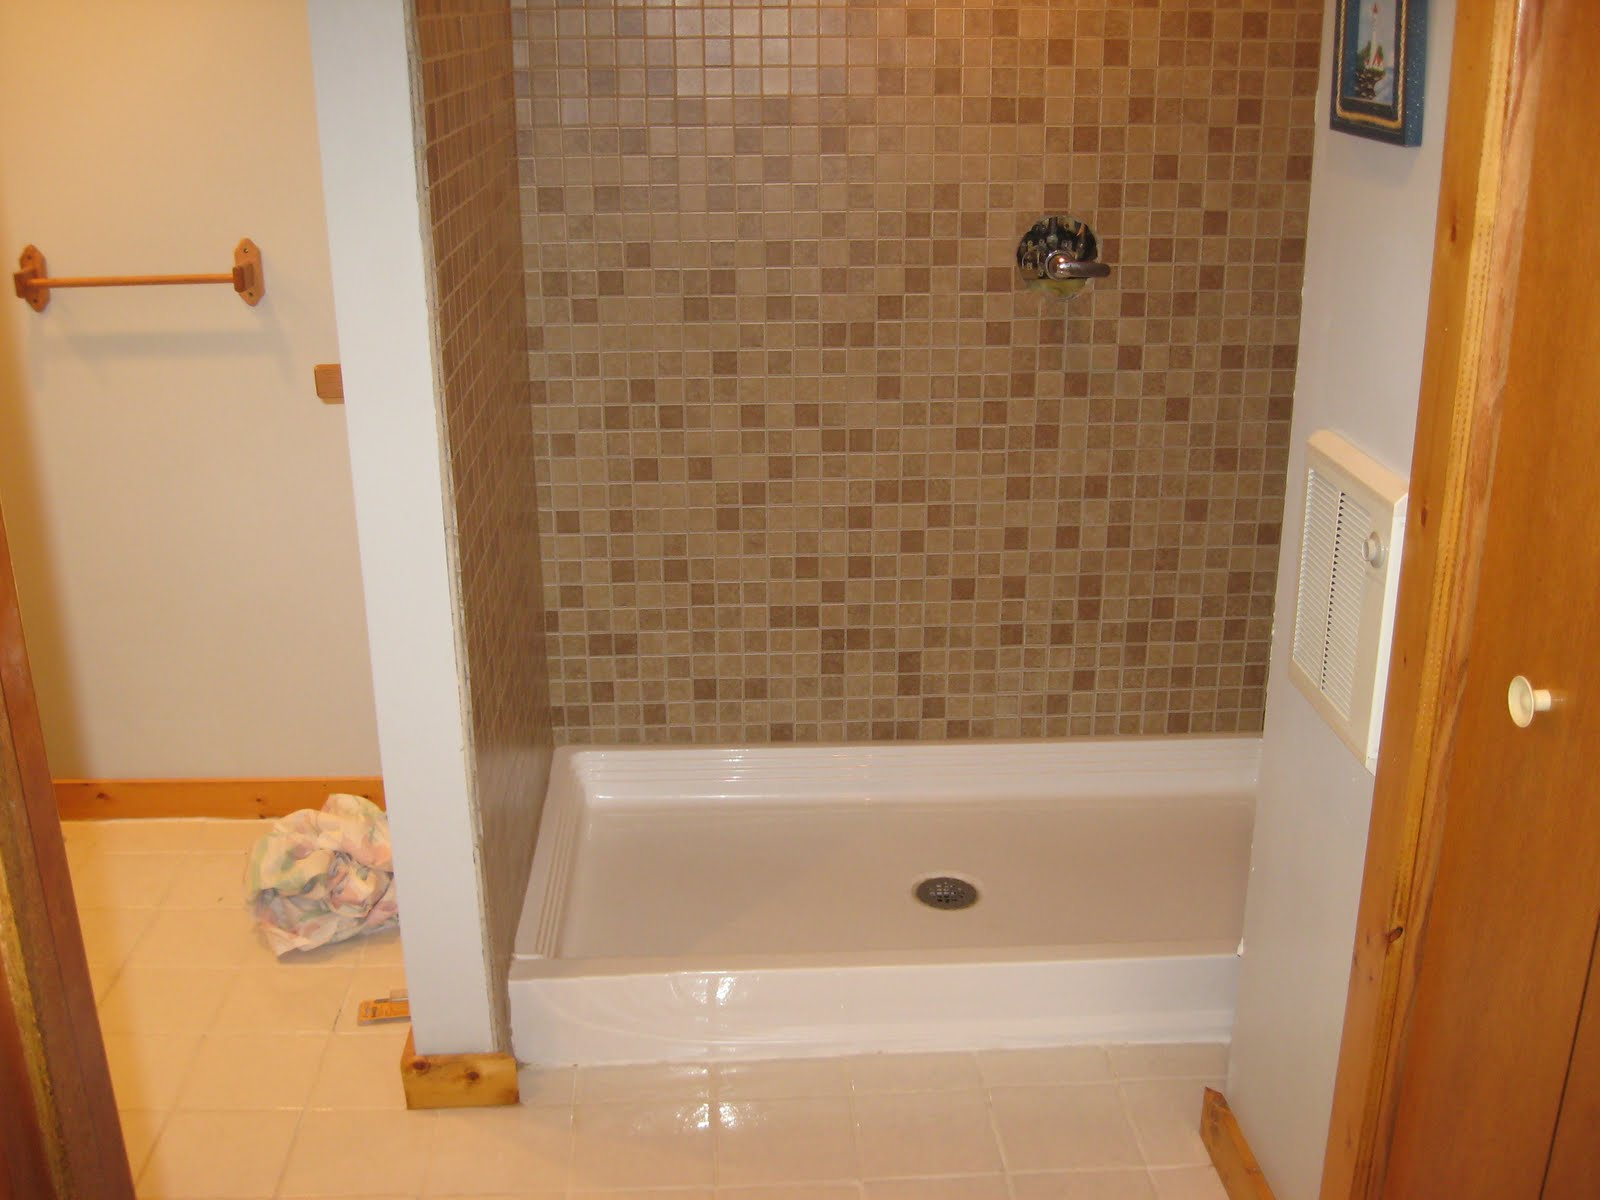 This Is A Mosaic Tile Shower Where The Small 2 X Tiles Are Already Placed On 12 Mesh Sheets Fibergl Pan Was Used